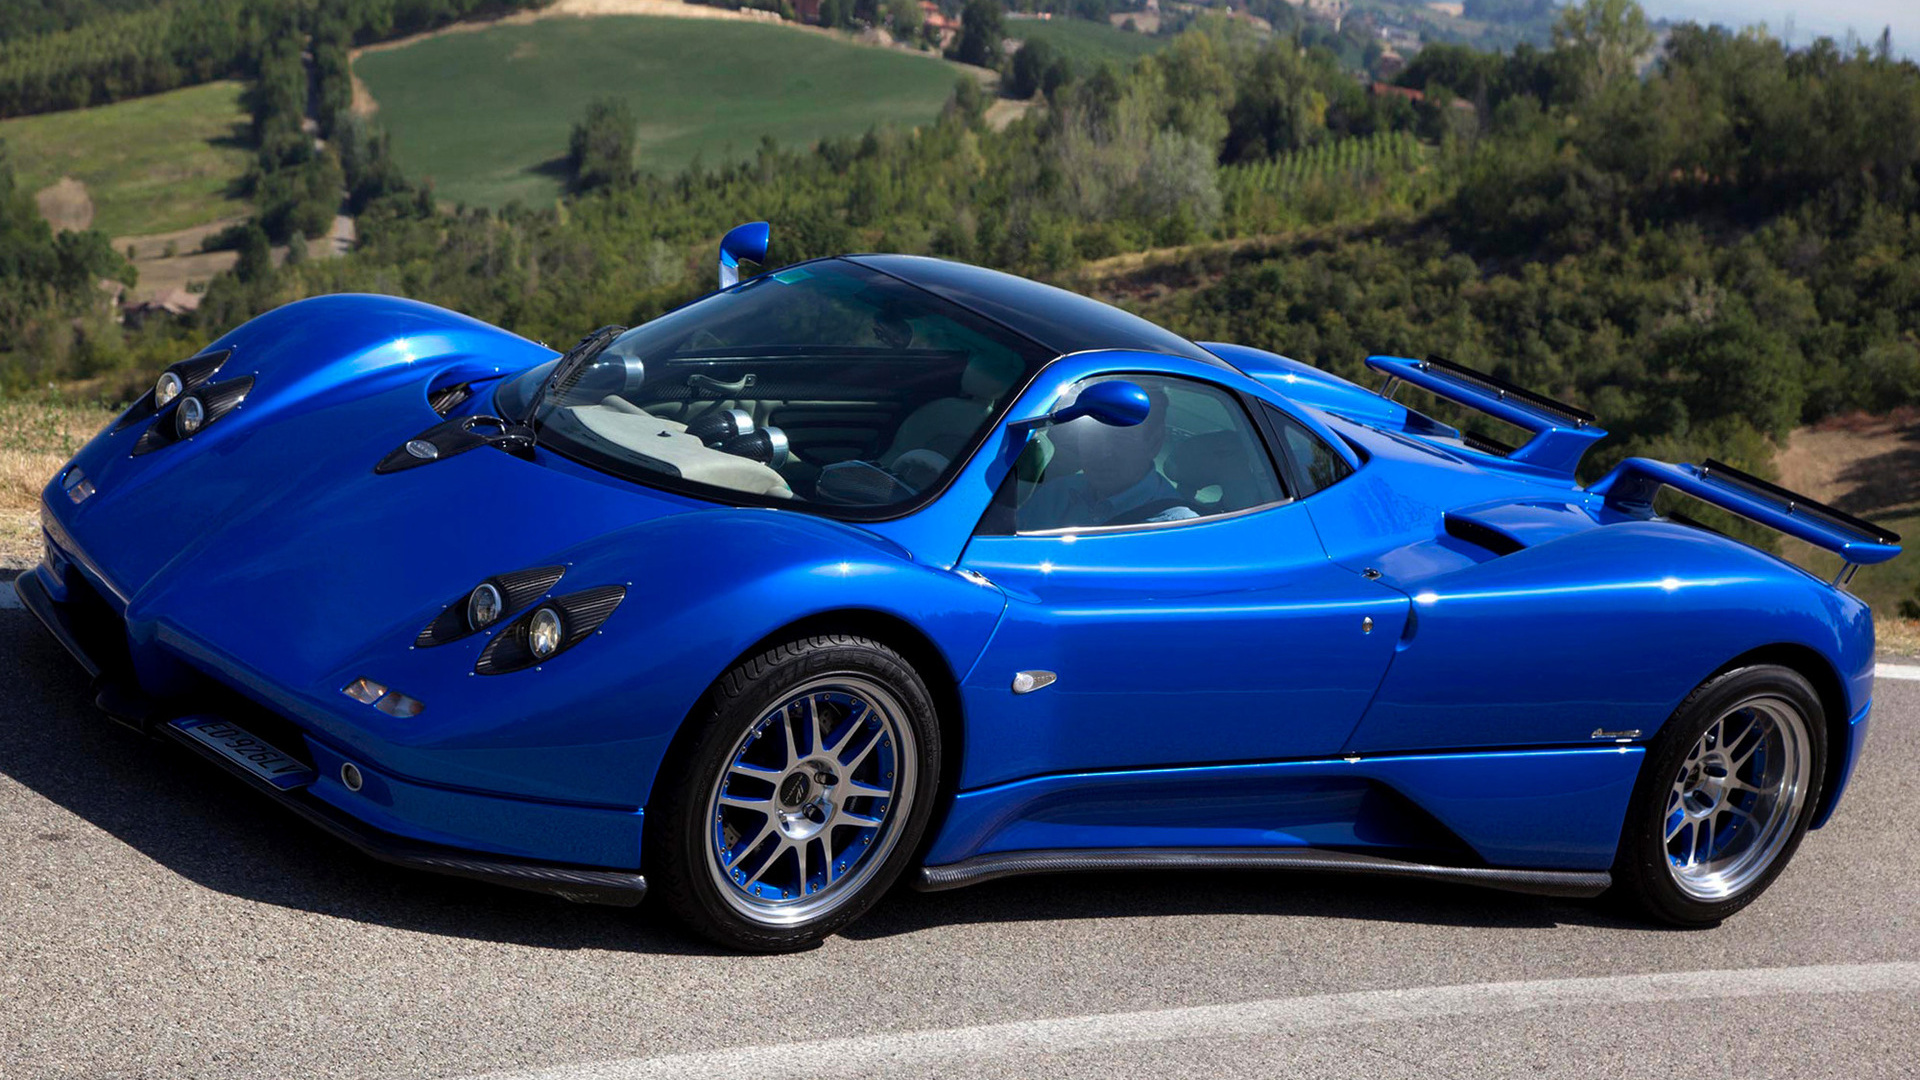 Pagani Zonda C S Wallpaper Hd